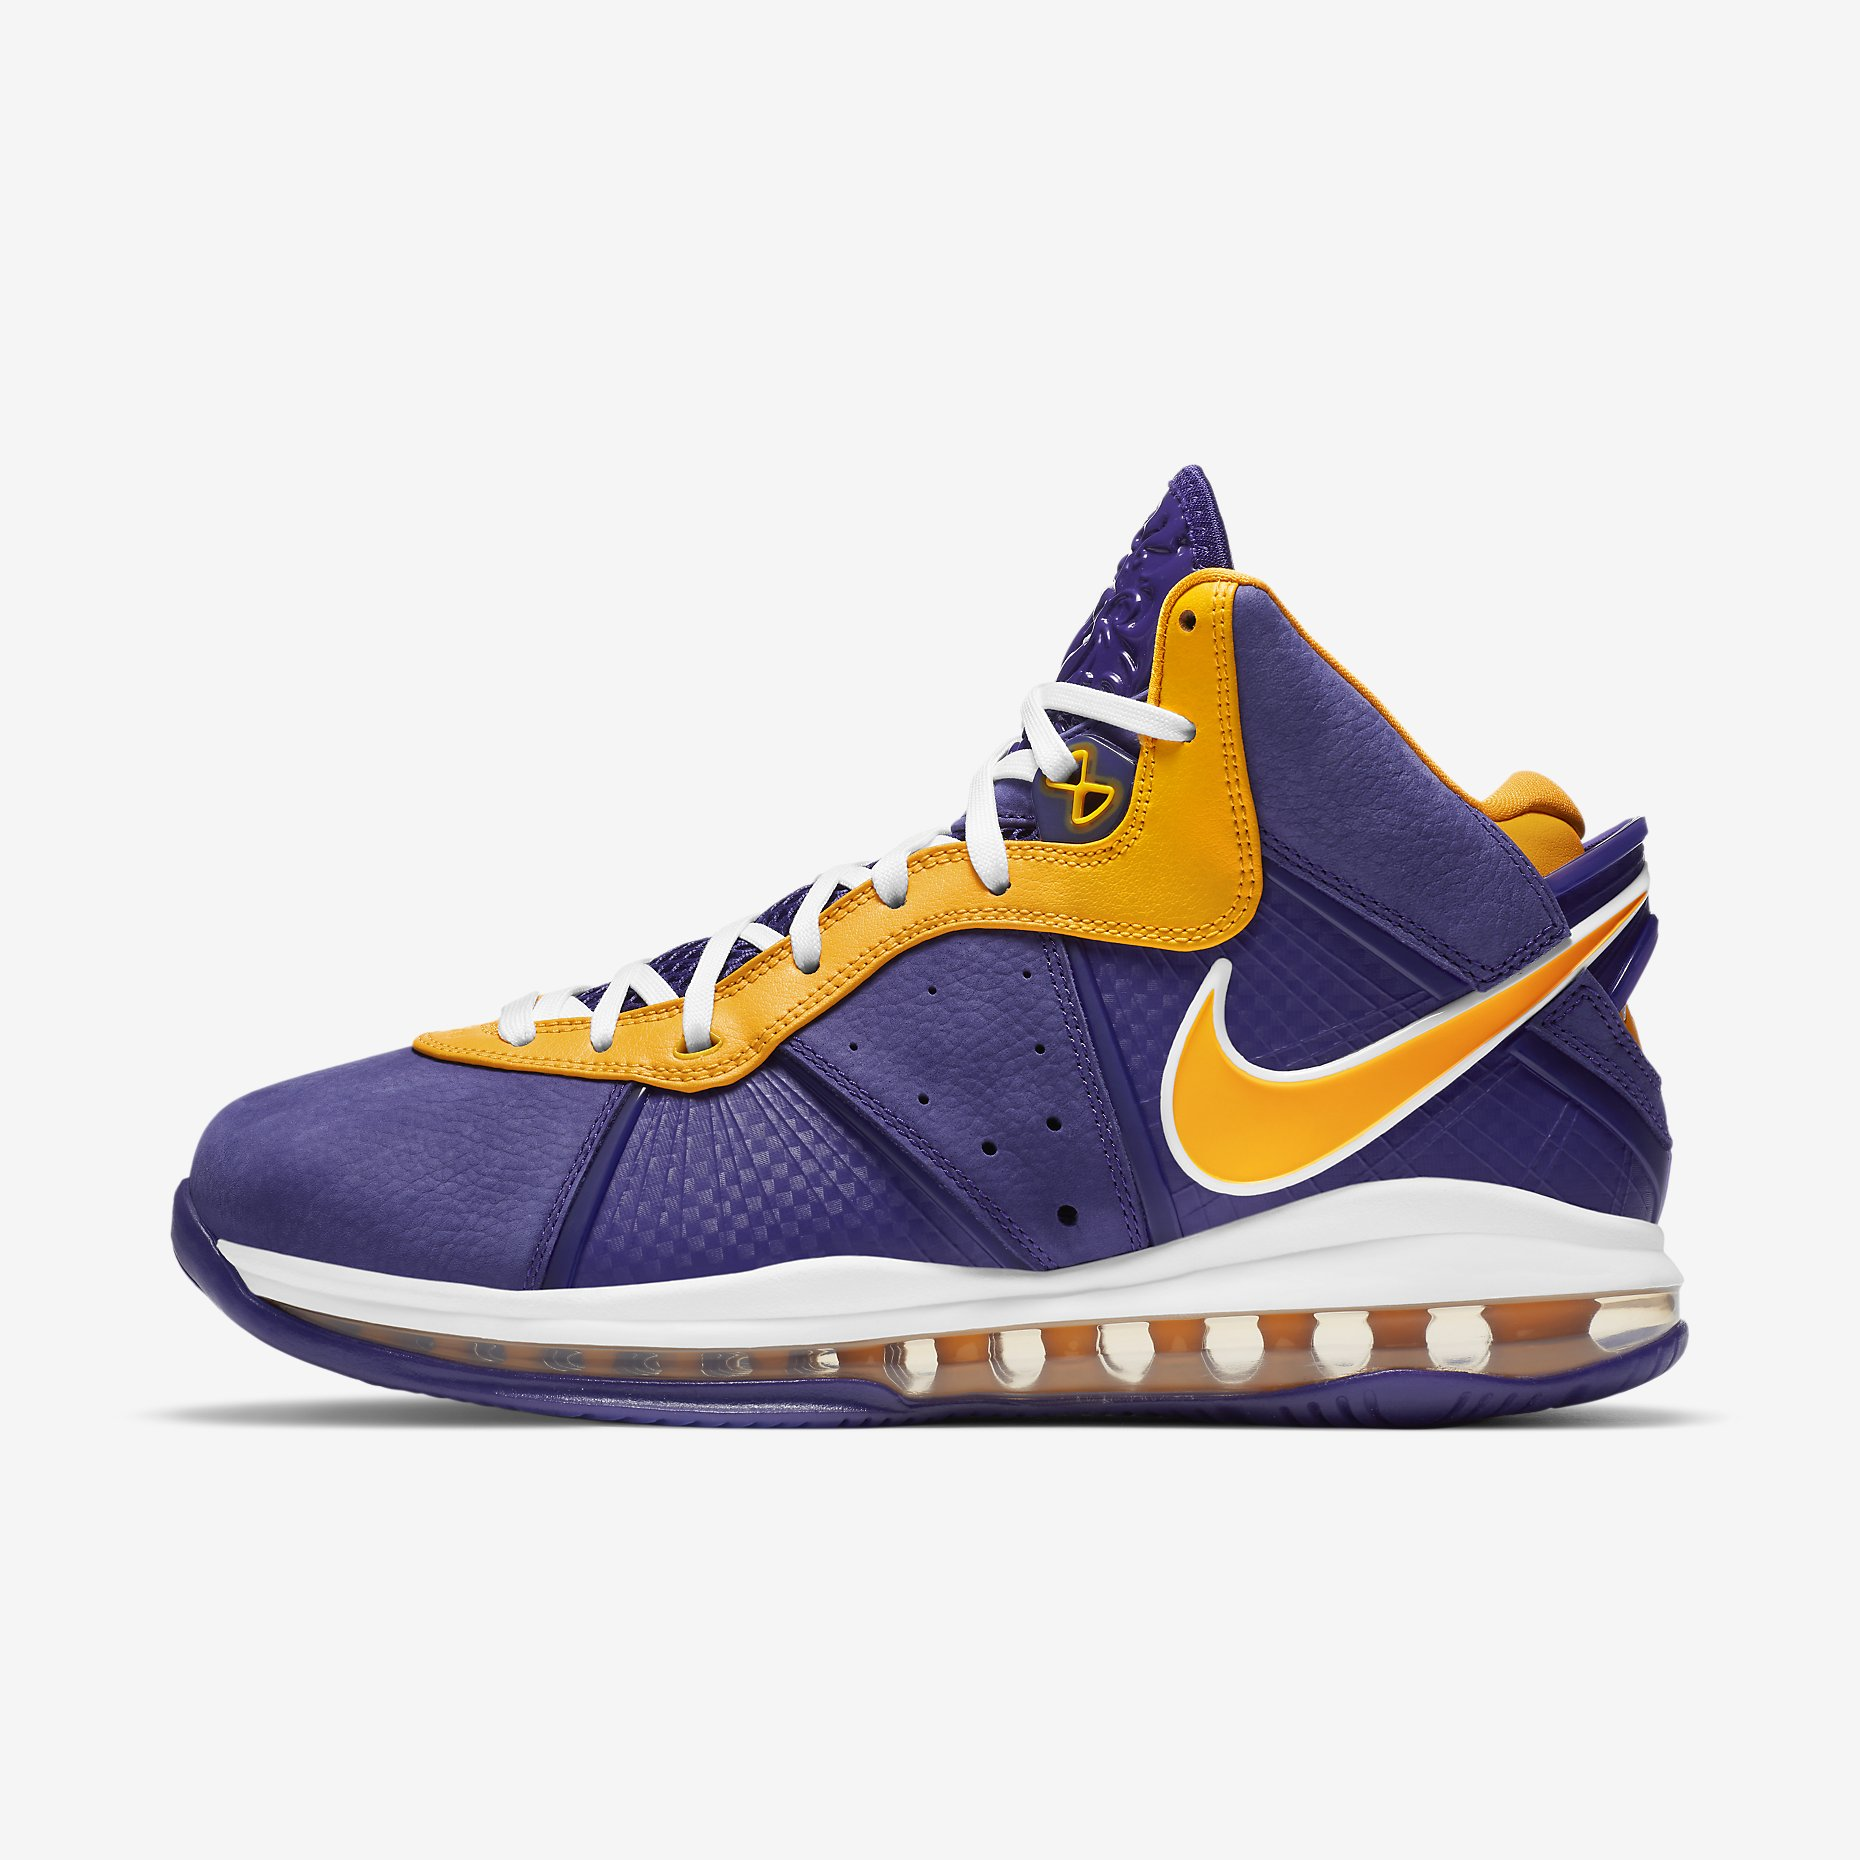 Nike LeBron 8 'Lakers'}